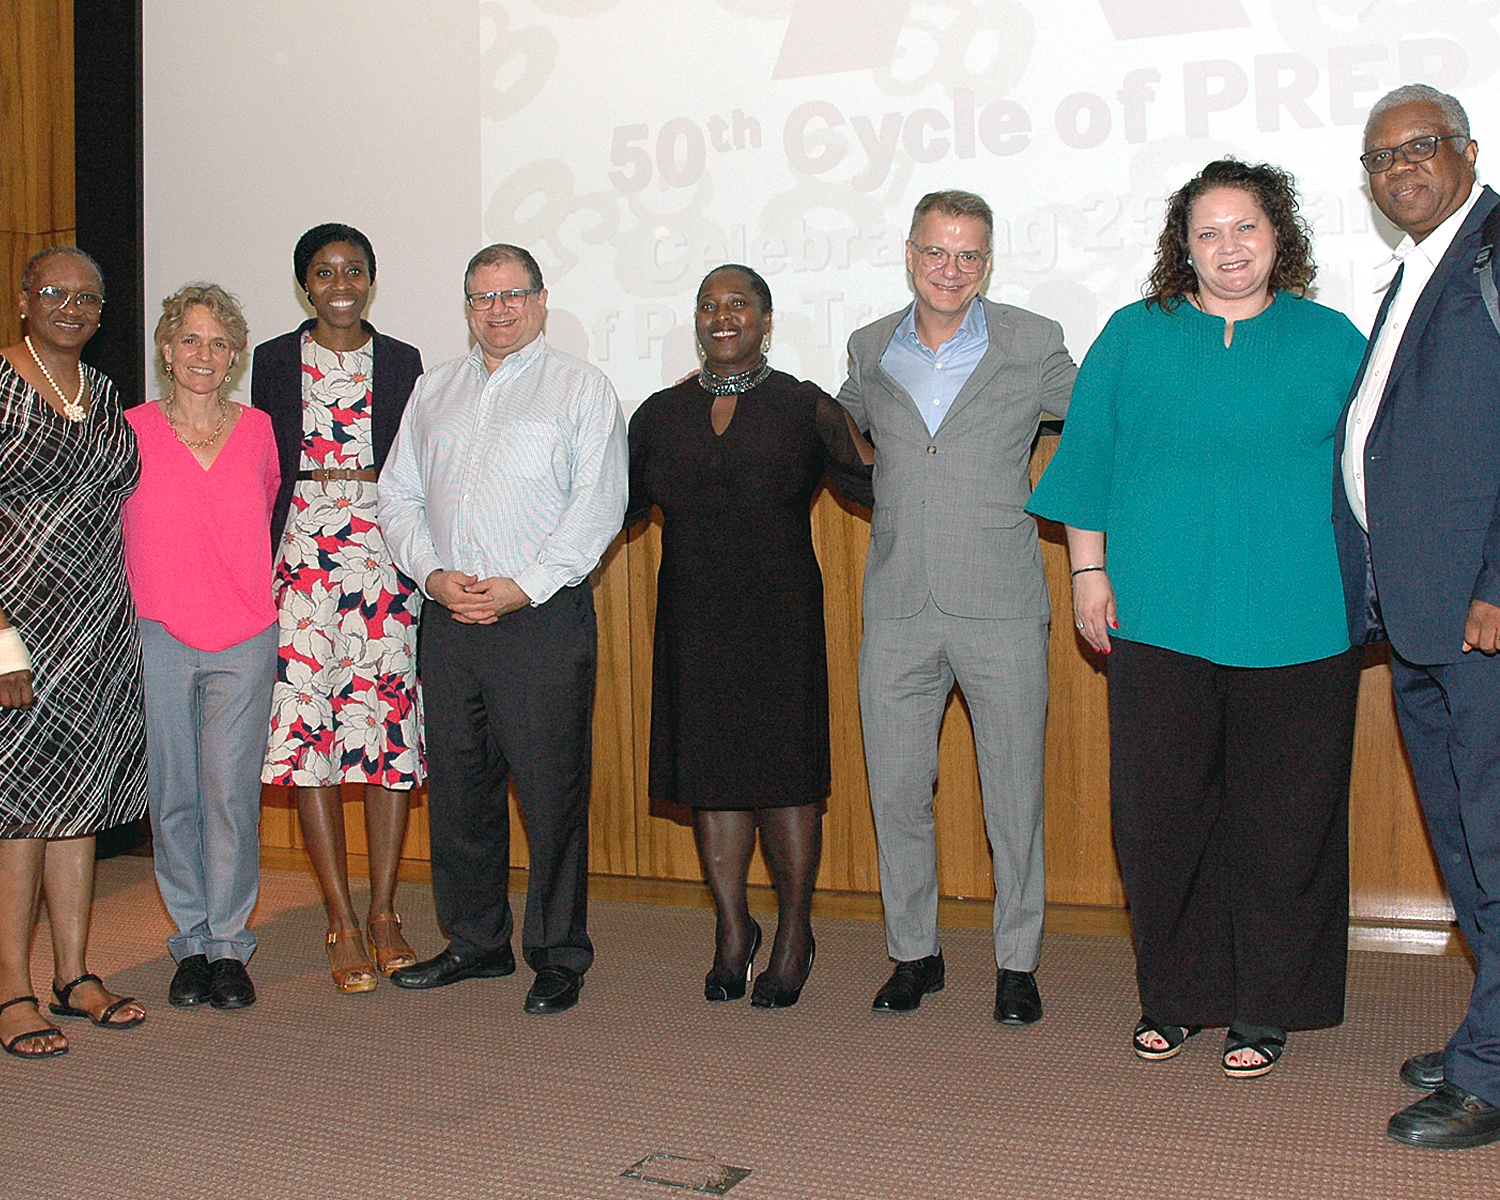 Sharen I. Duke with Honored Guests and Alliance Board members